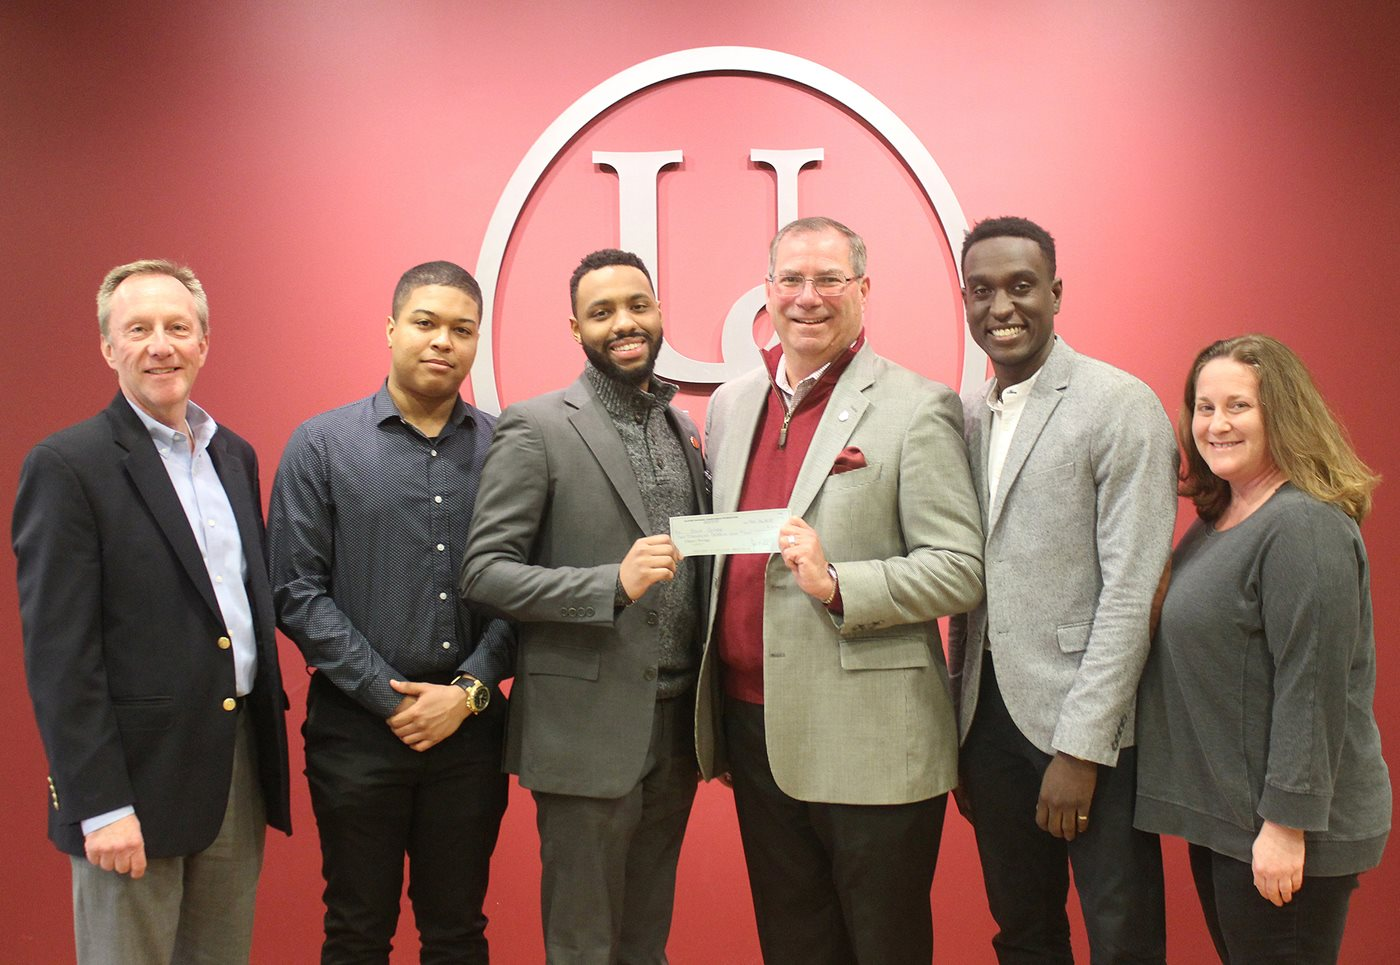 Brothers at Bard Receiving Grant Check